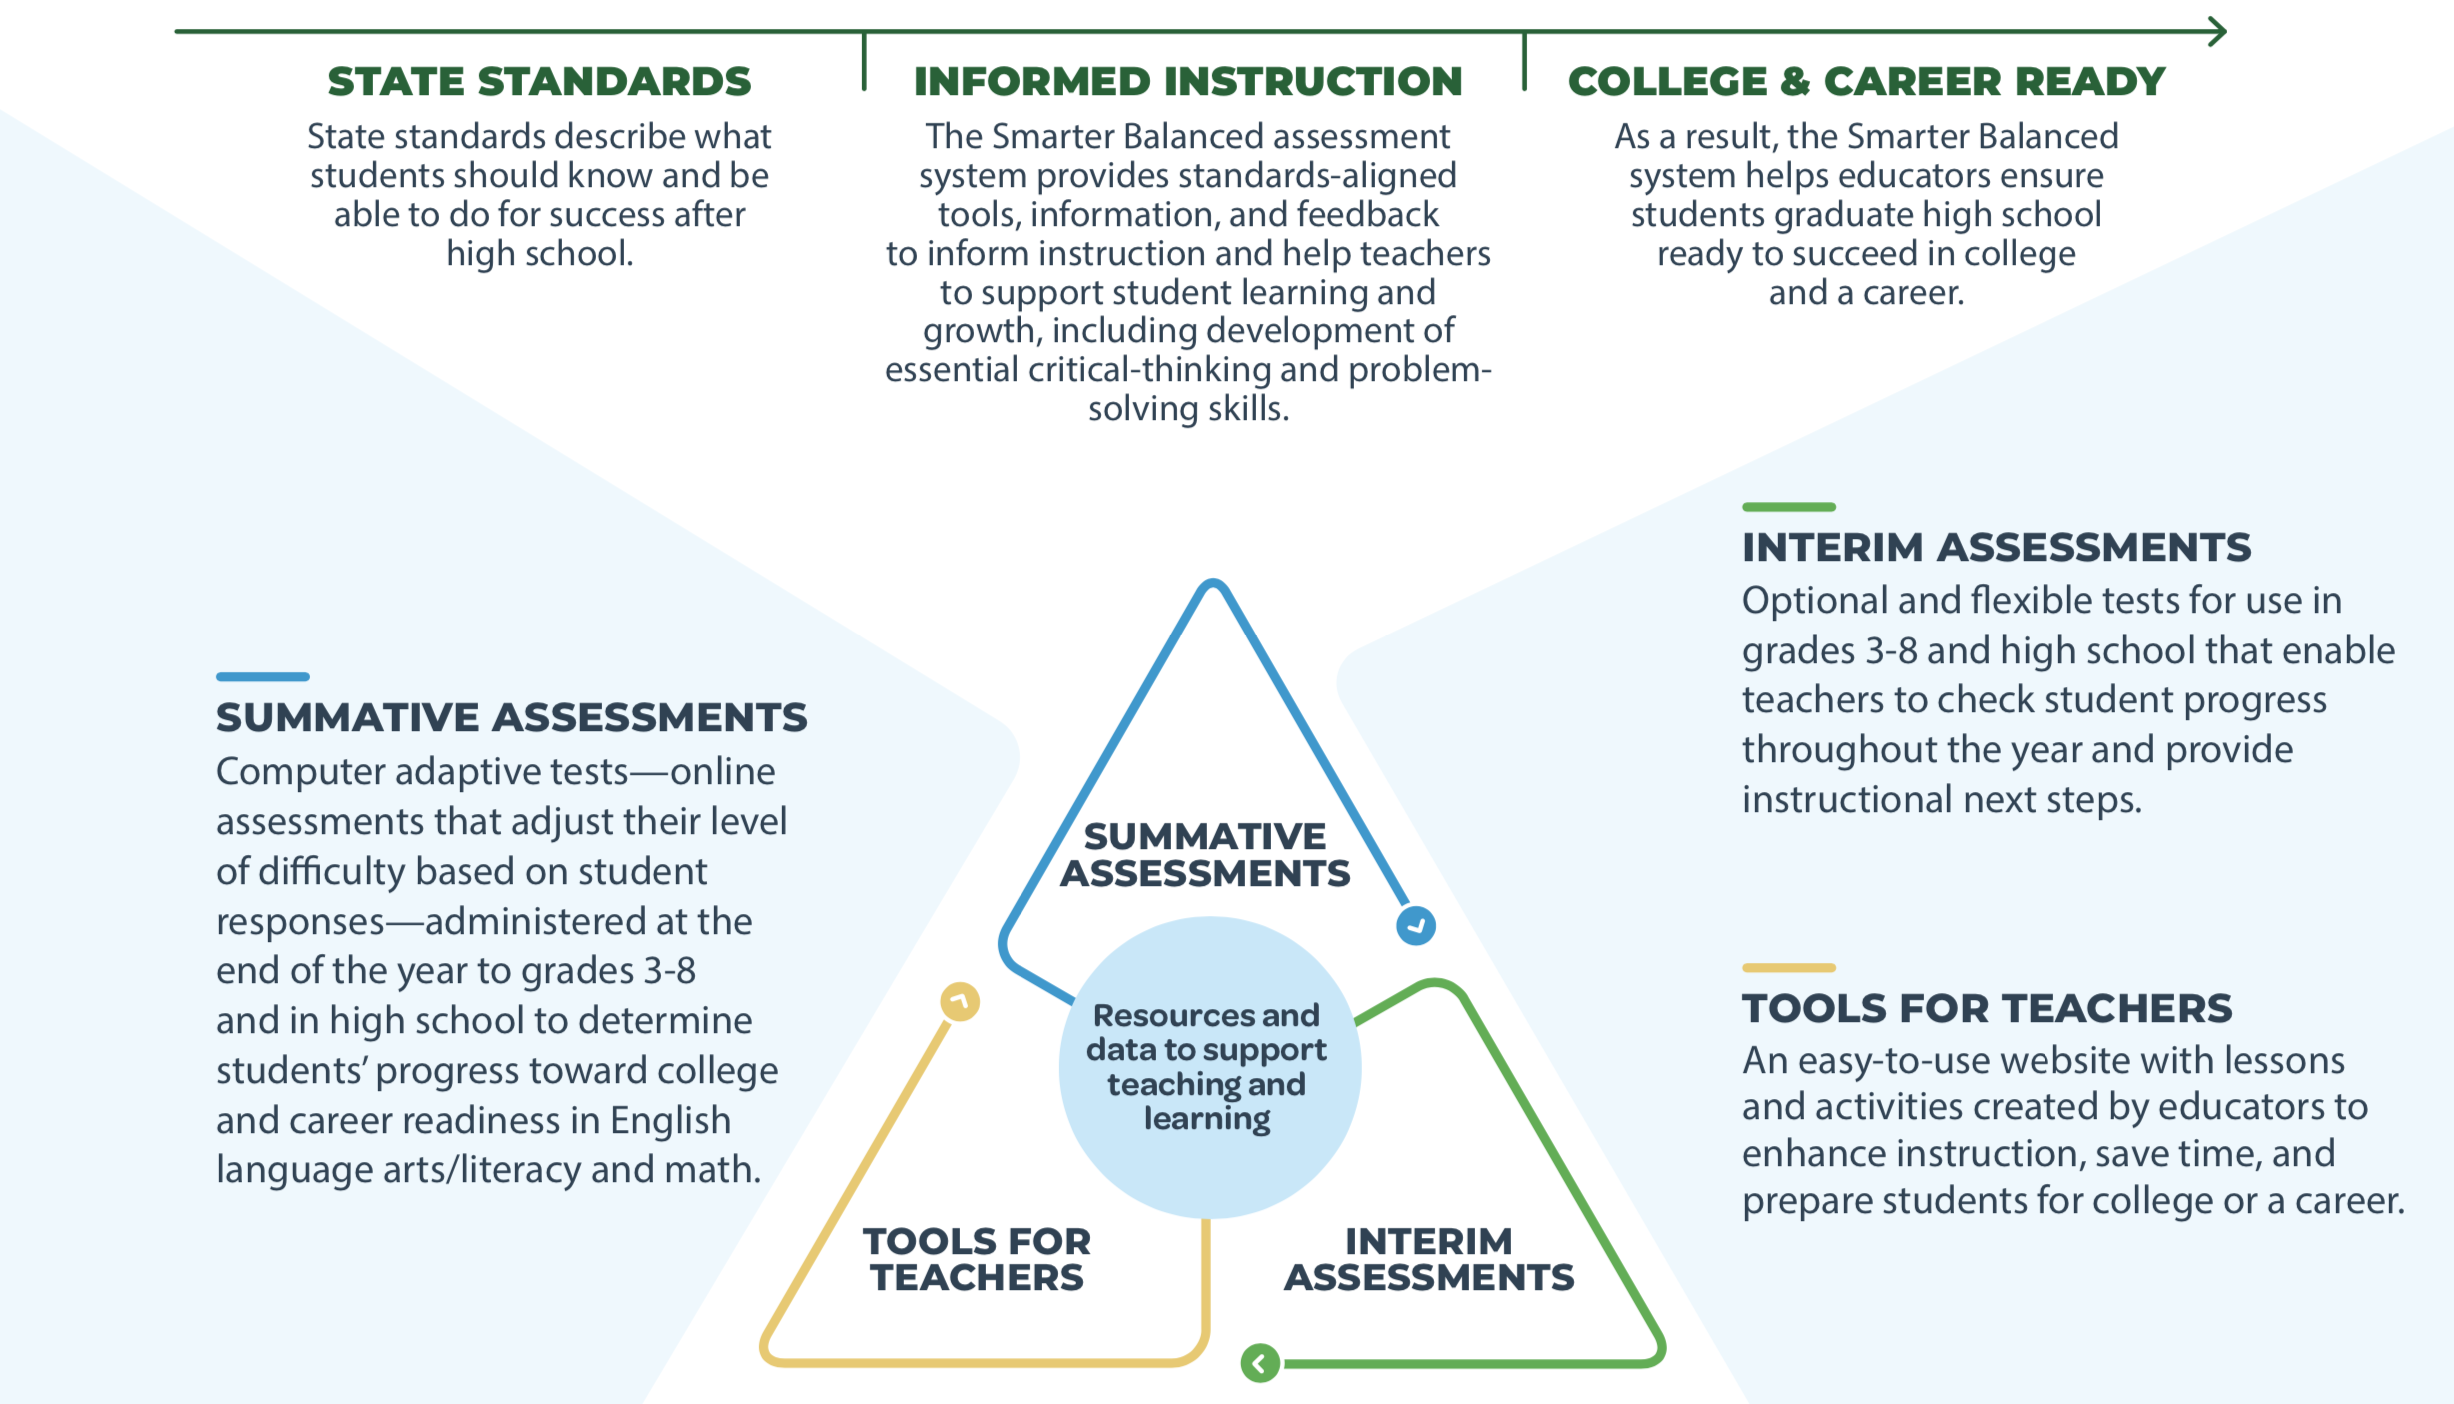 Review a PDF of the Smarter Balanced Assessments over graphic available at: https://smarterbalanced.org/wp-content/uploads/2020/10/SB_MarketingGraphic_DoubleSided_C_Public_508_ts.pdf